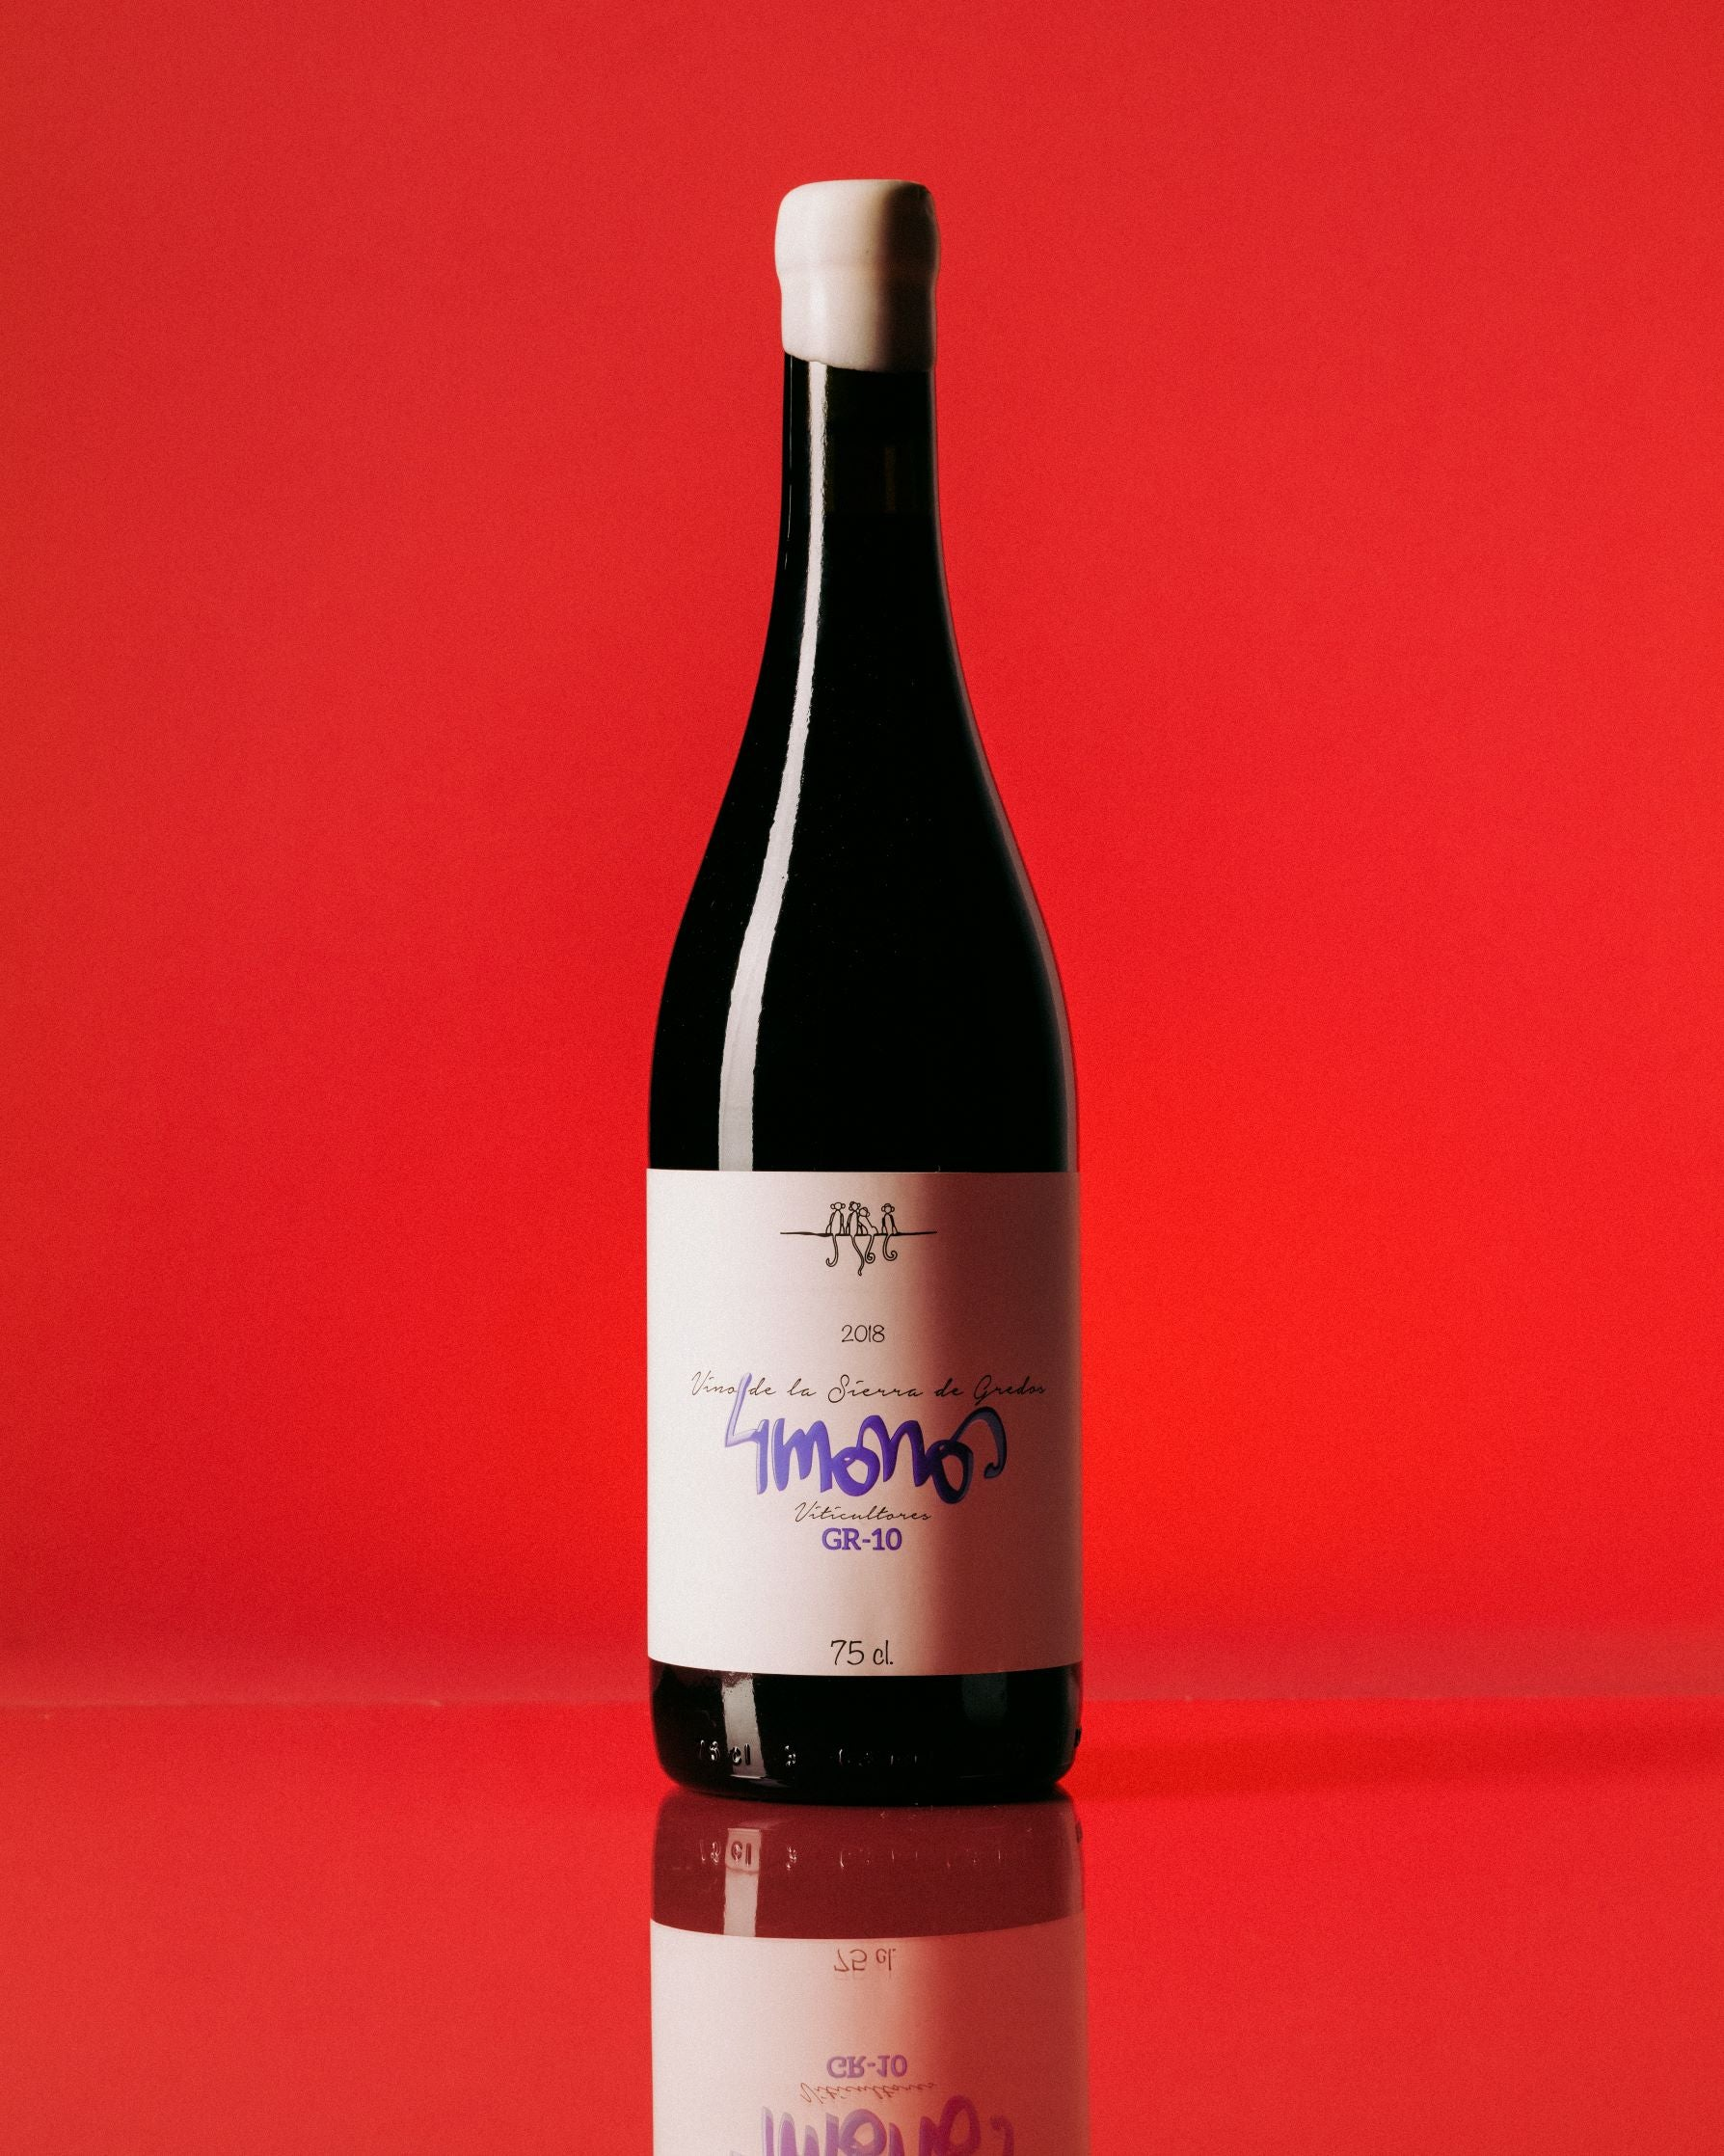 4 Monos, GR-10 2018 from 4 Monos - Parcelle Wine